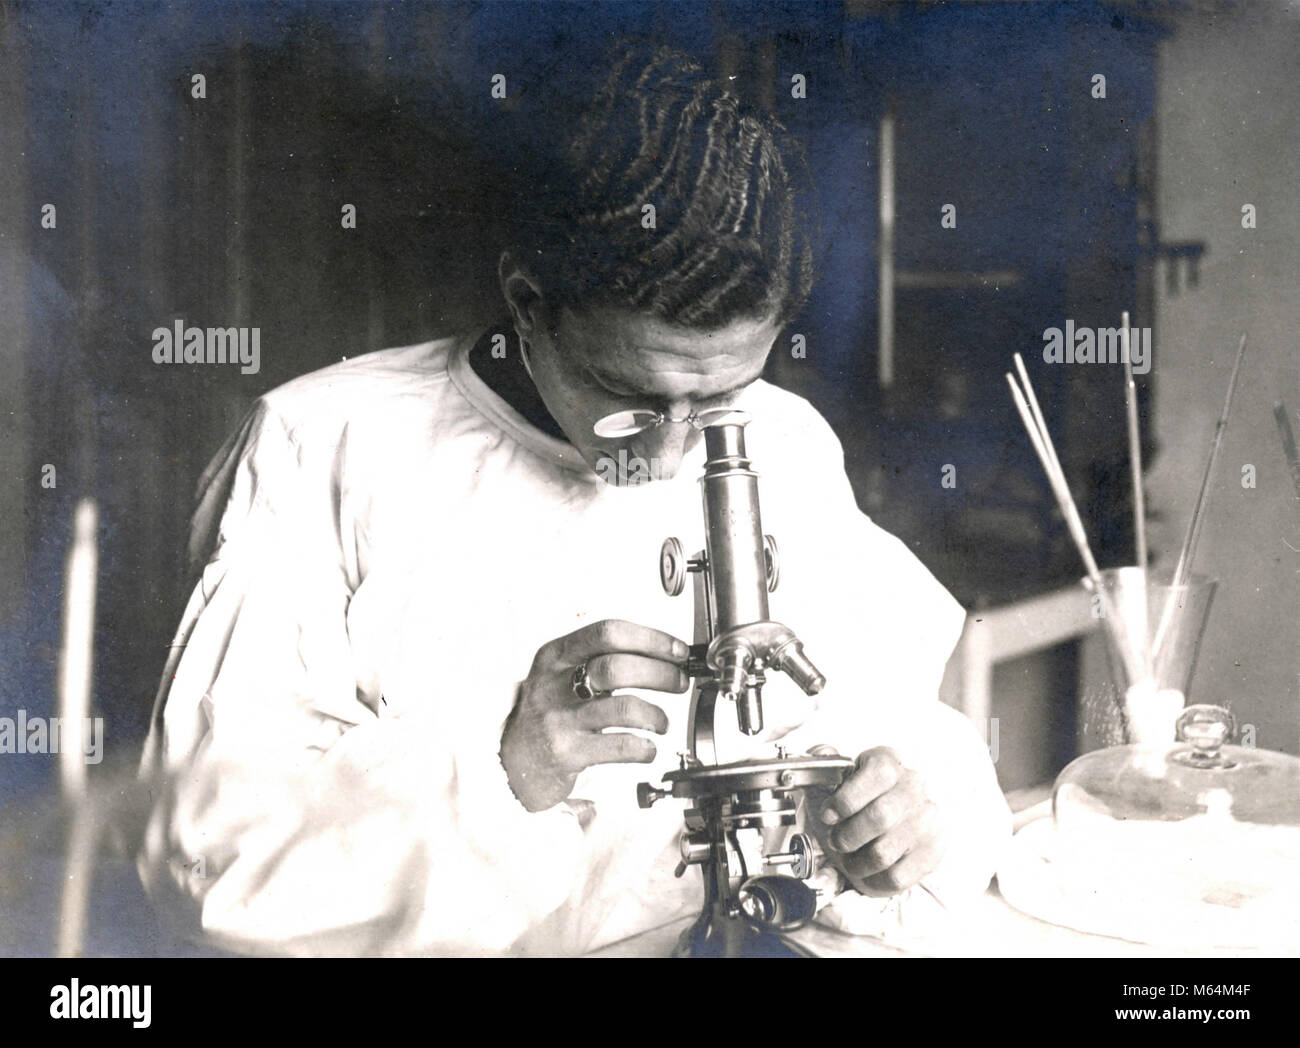 Scientist analyzing with the microscope, Italy 1930s - Stock Image